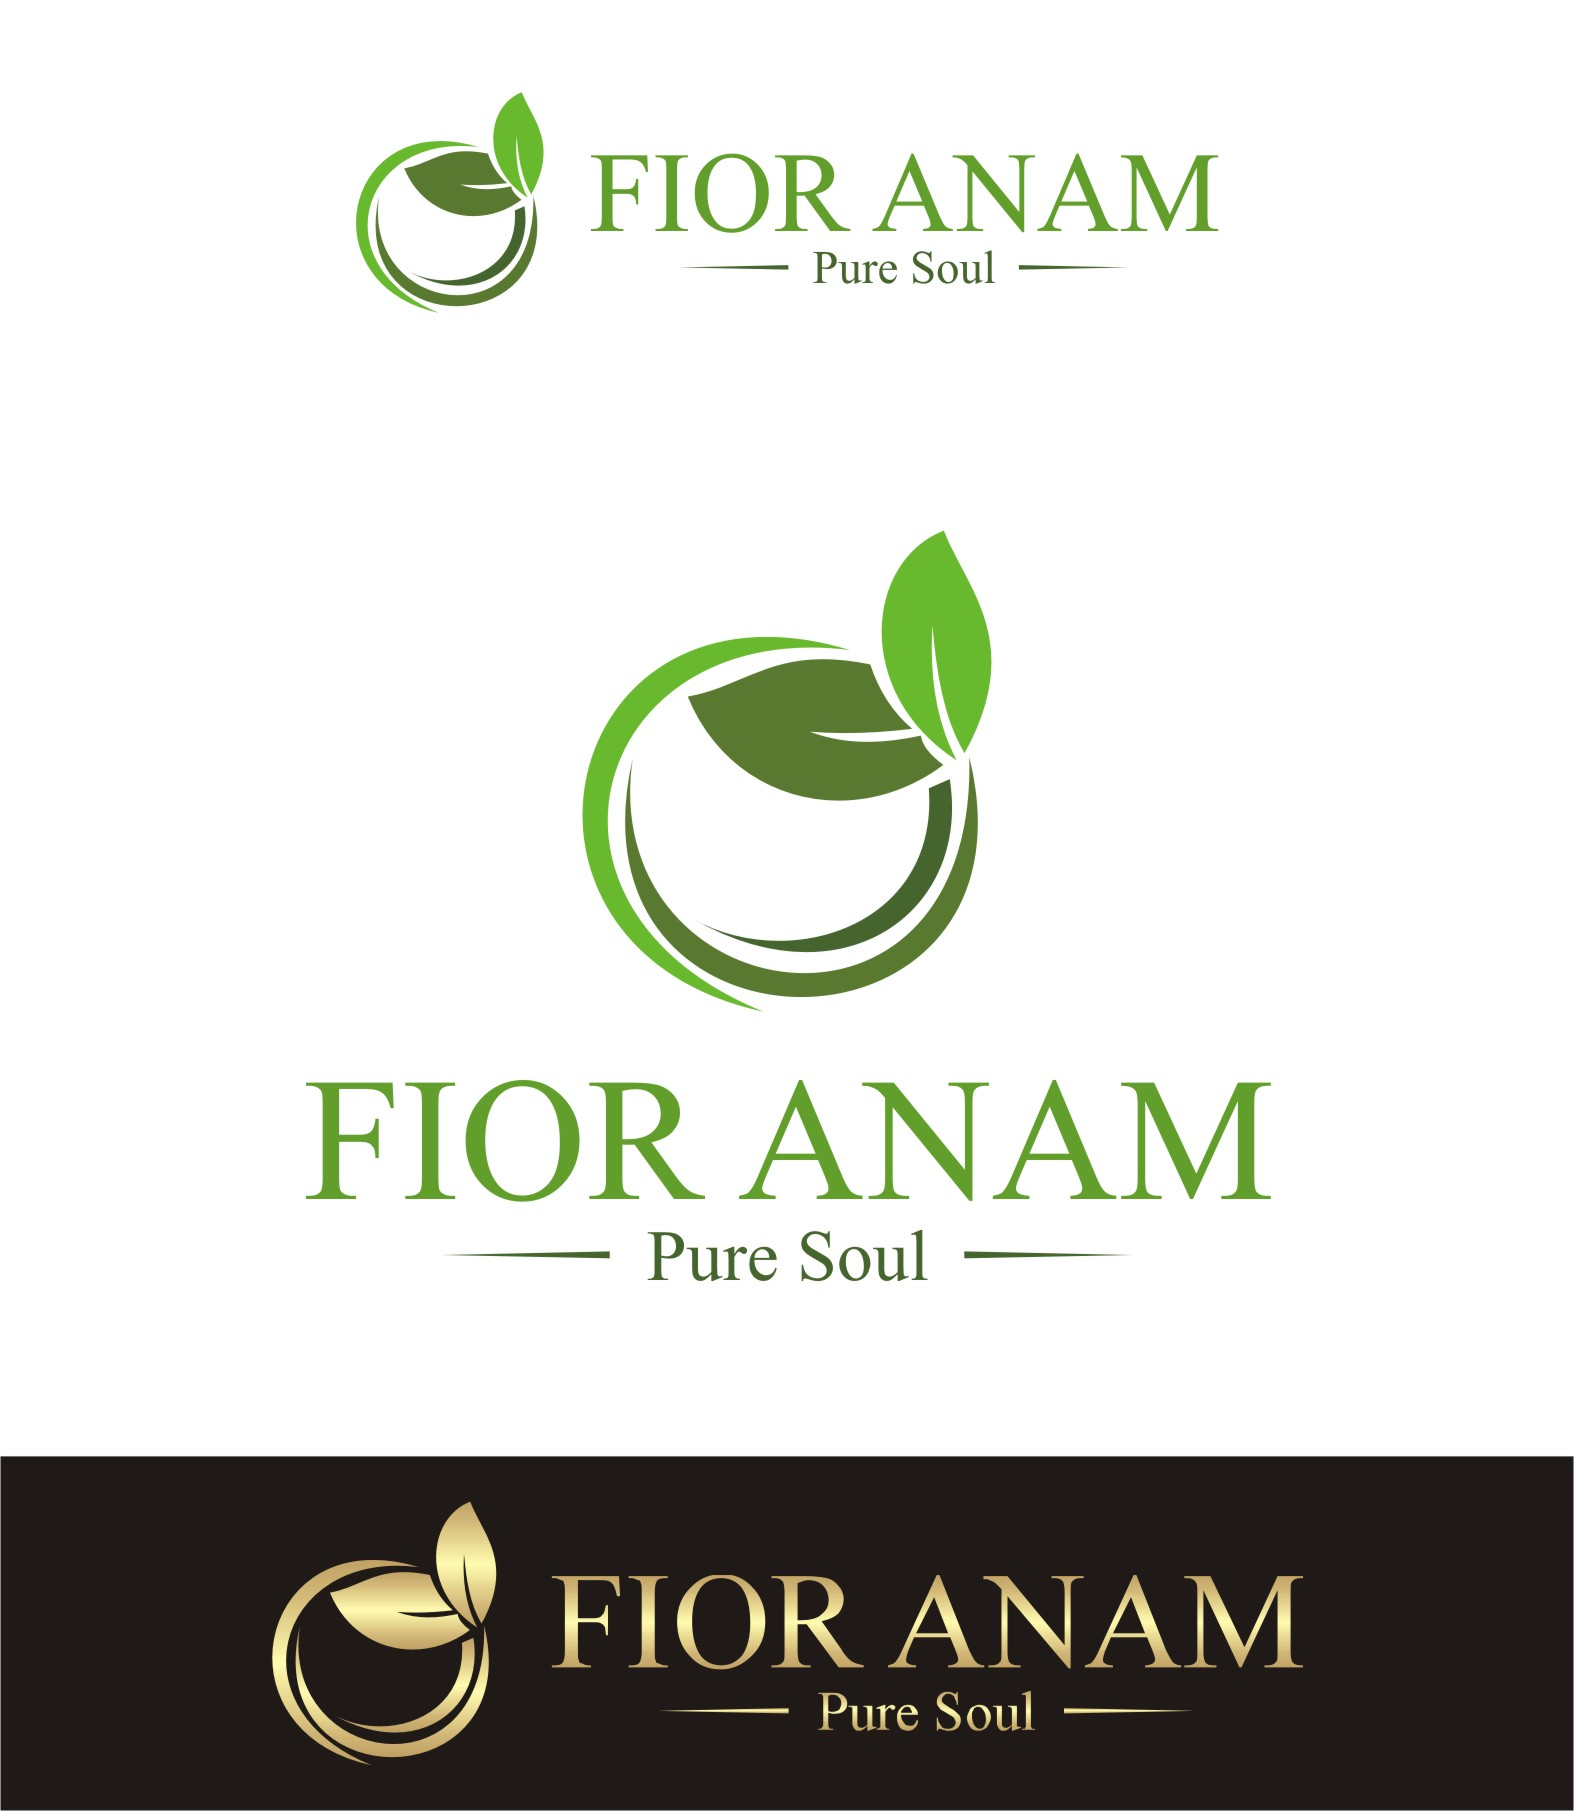 Logo Design by Lynx Graphics - Entry No. 323 in the Logo Design Contest Creative Logo Design for Fior Anam.